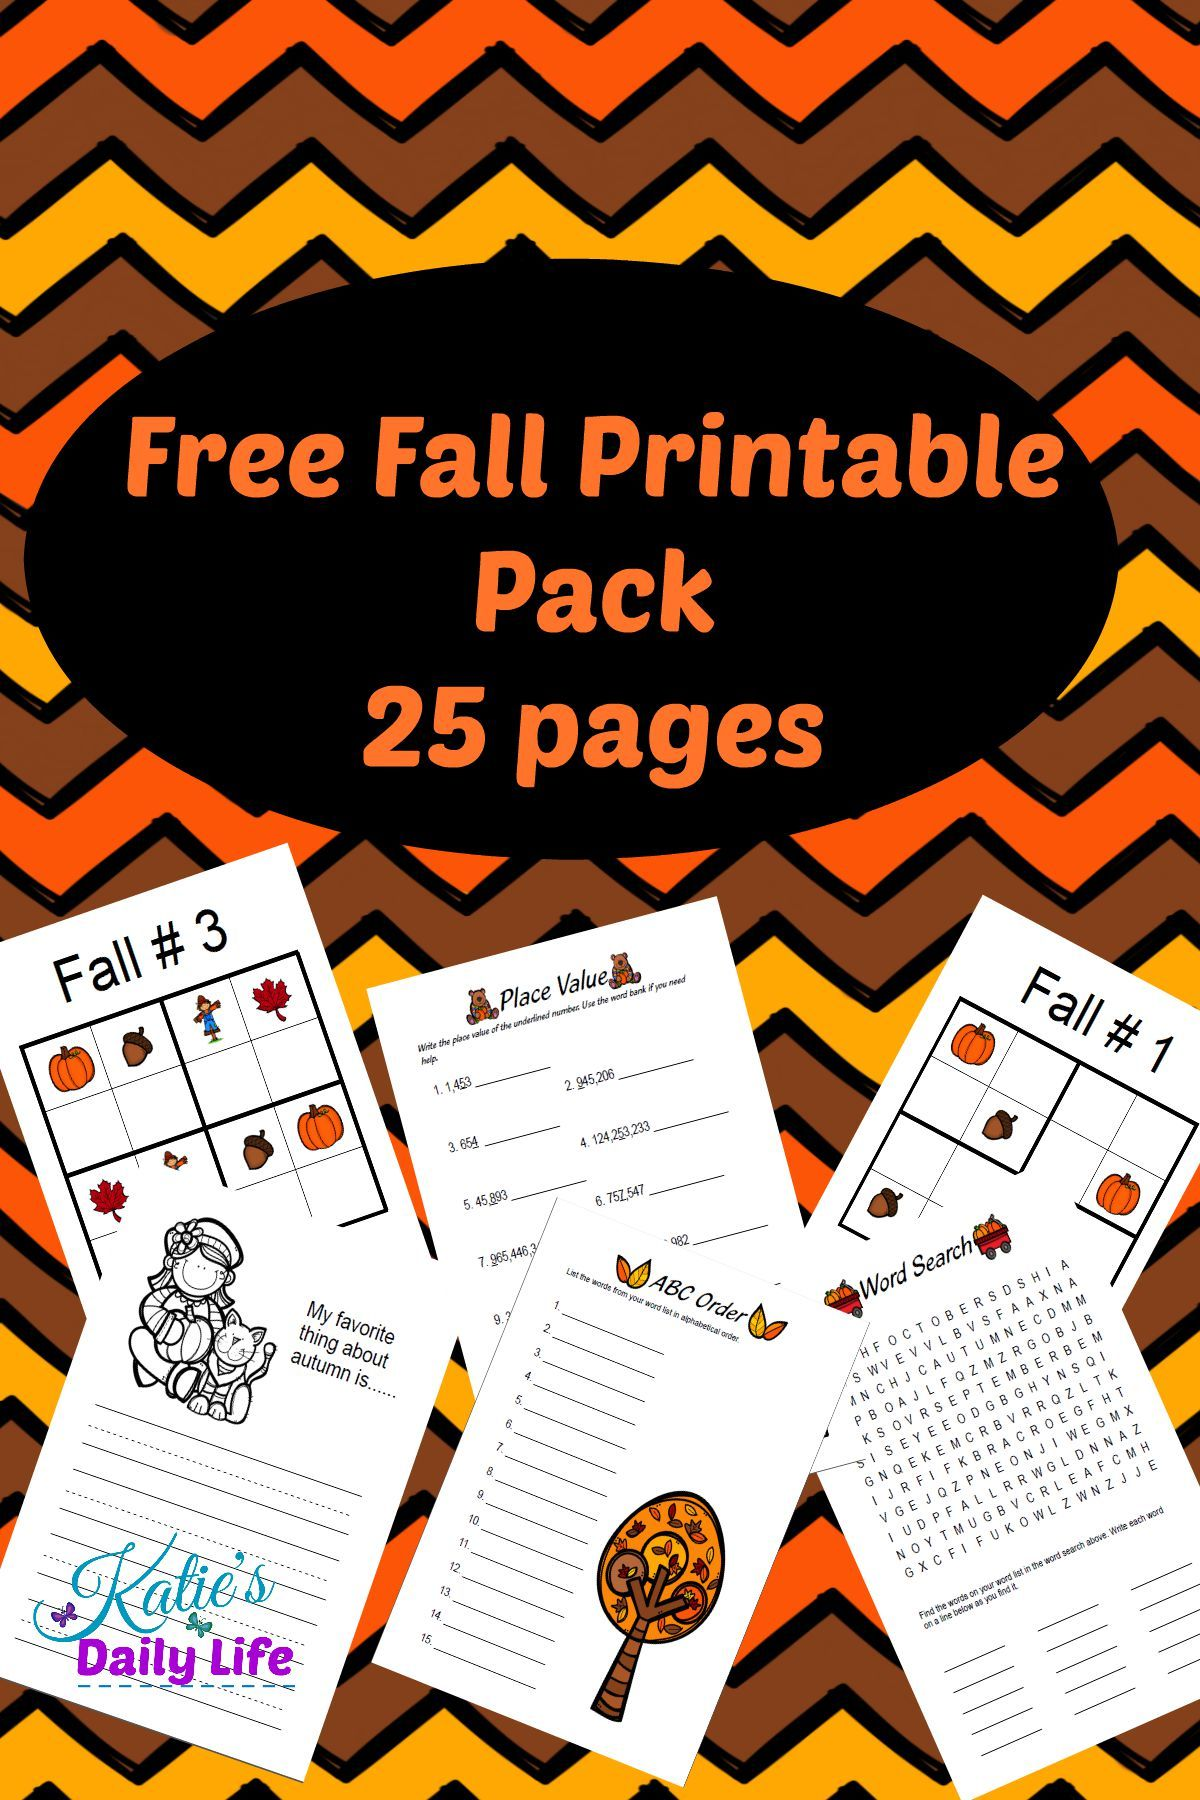 This Free Fall Printable Pack Is A Great Way To Add Fun To